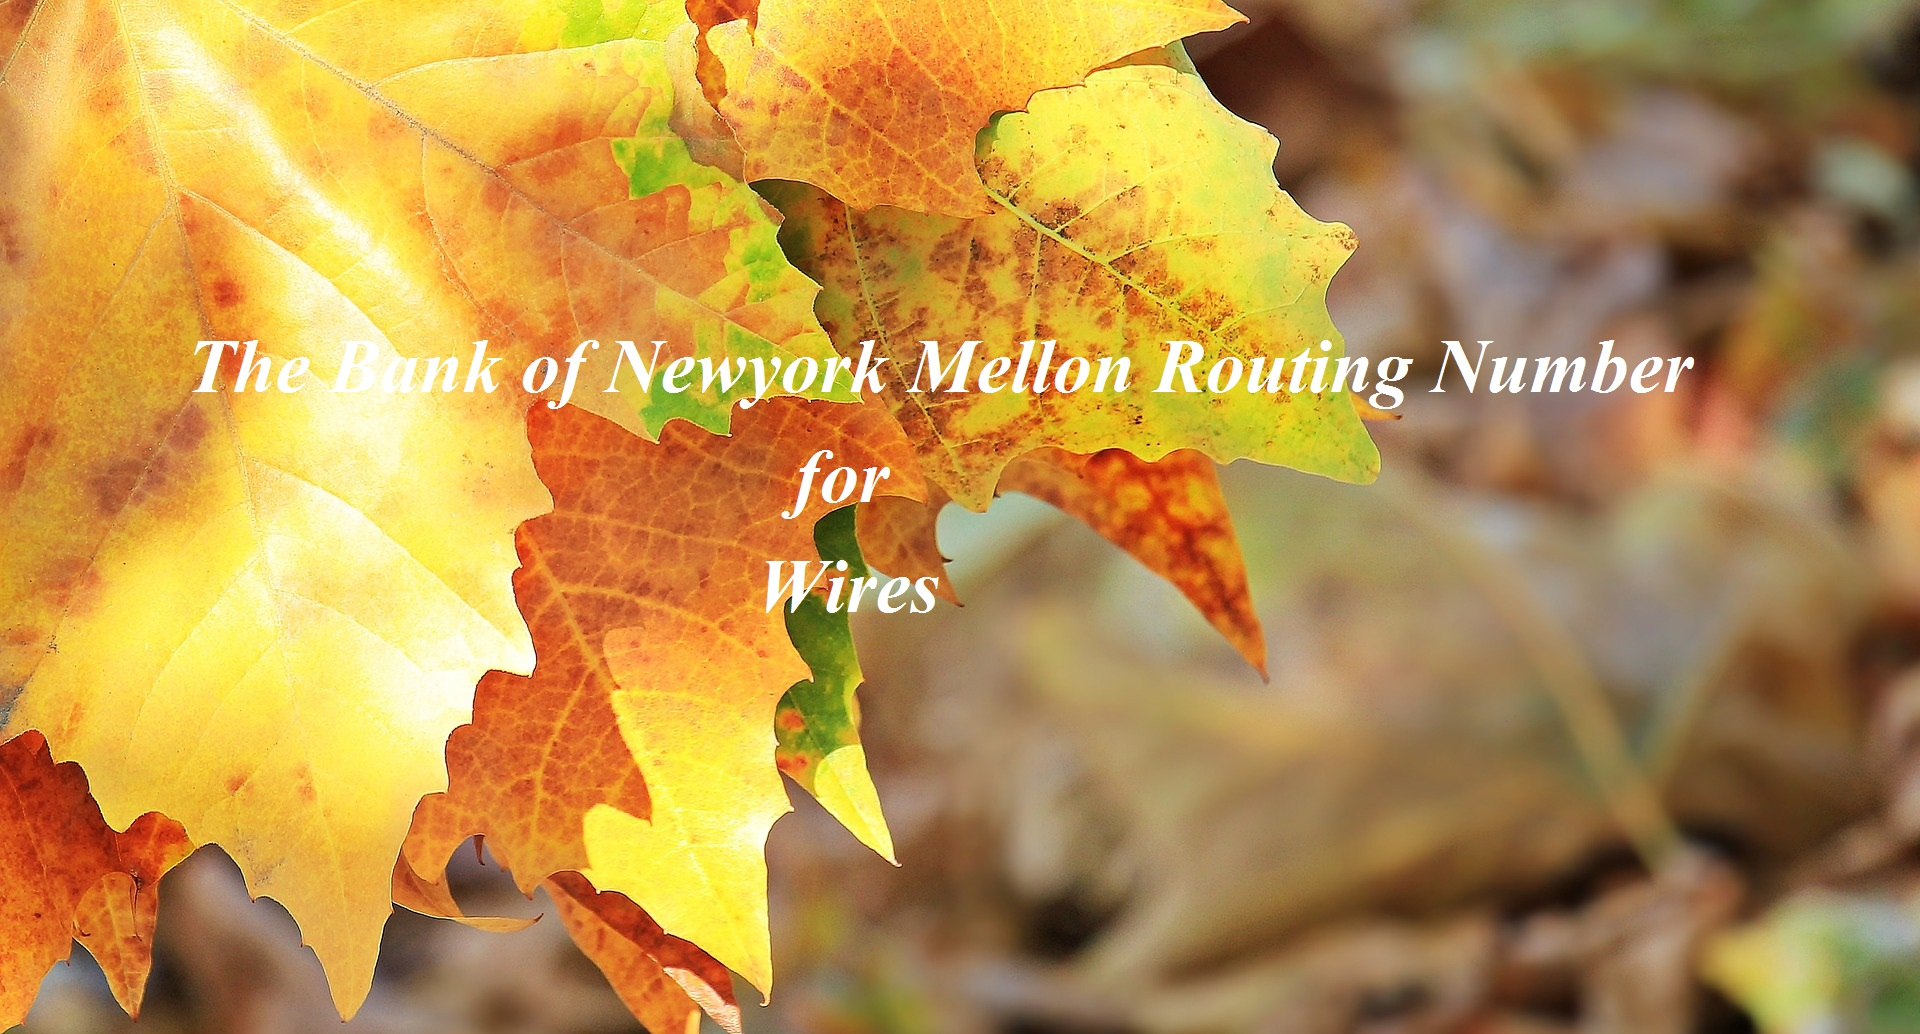 The Bank of Newyork Mellon Routing Number for Wires